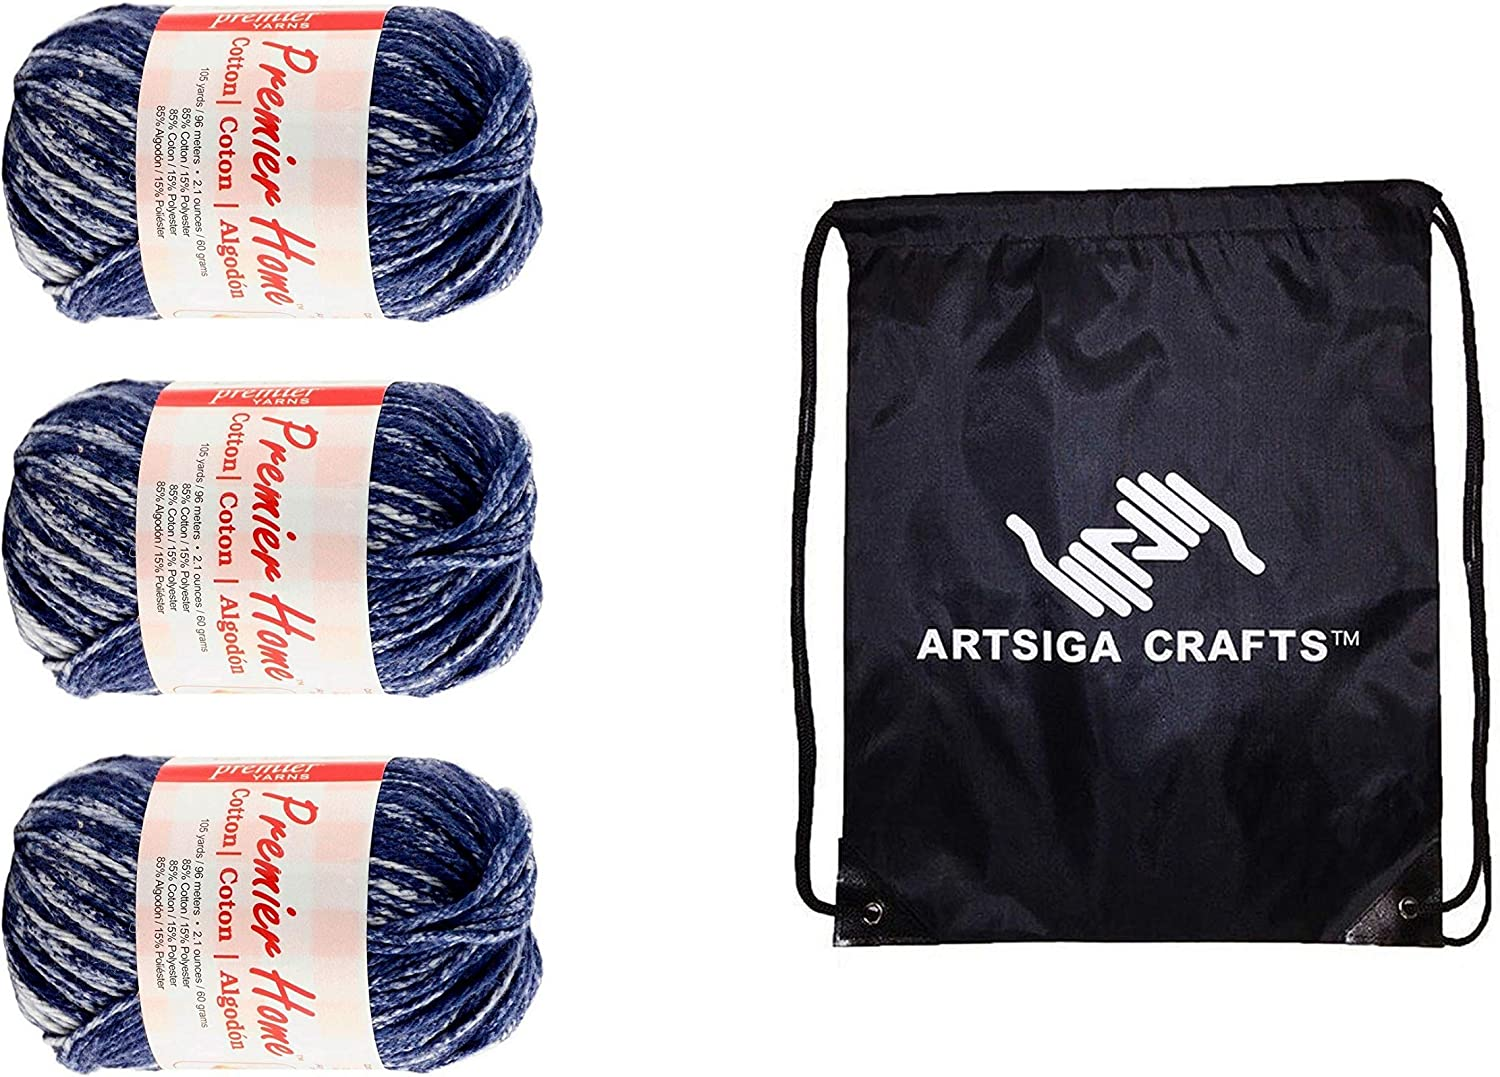 Premier Knitting Yarn Home Cotton Worsted Multi Denim Splash 3-Skein Factory Pack (Same Dye Lot) 44-19, Recycled Cotton-Polyester Blend, Bundle with 1 Artsiga Crafts Project Bag